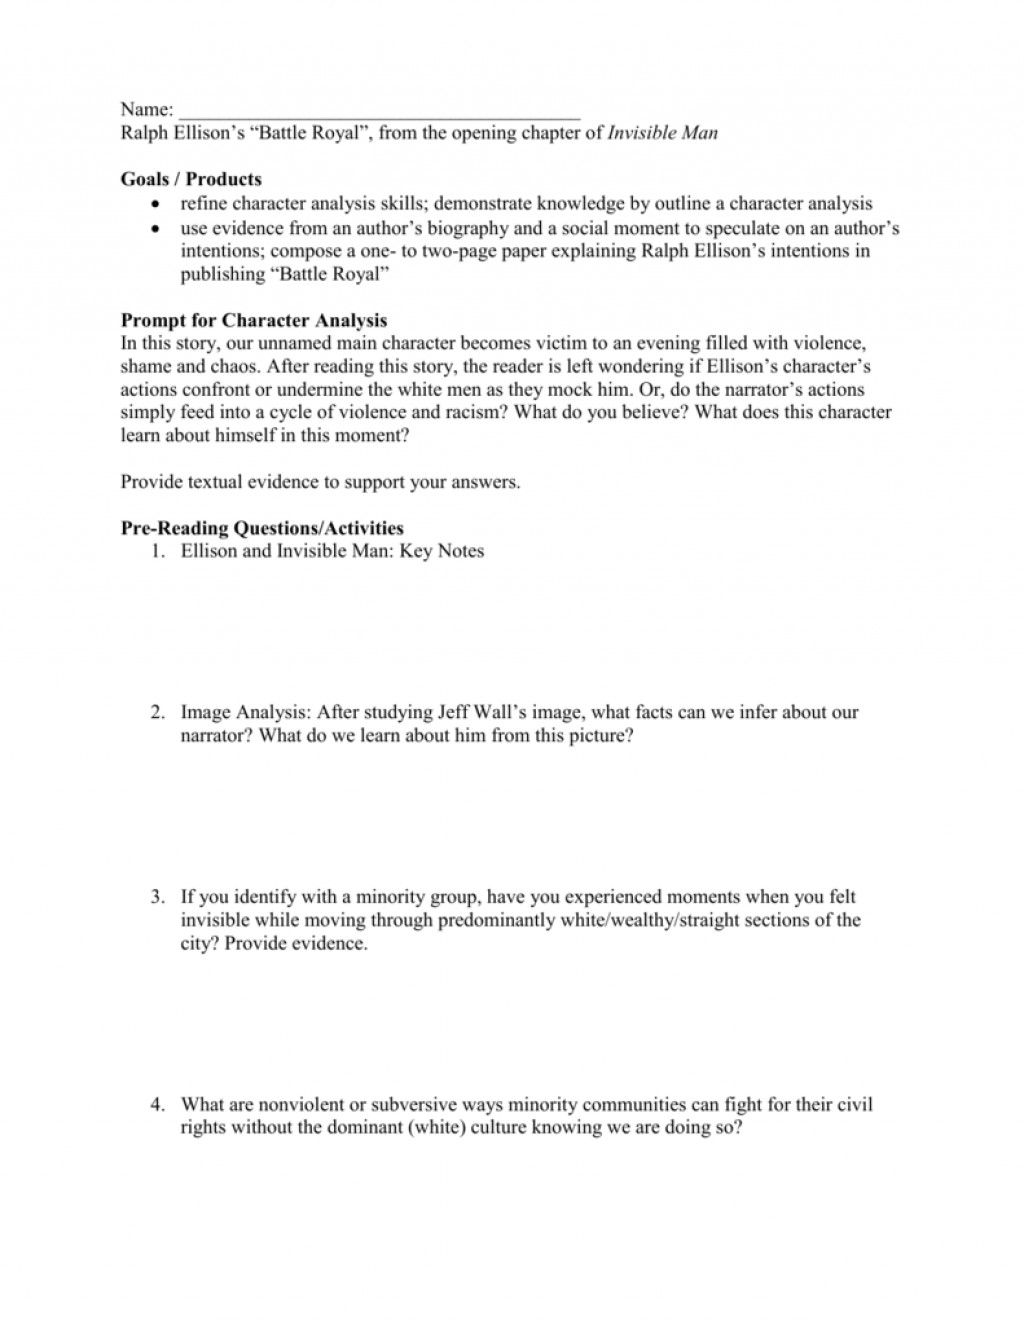 009 Research Paper Battle Royale Topics Royal Literary Analysis20ay Conclusion Prompts Argumentative20 Argumentative On Singular Literature Large